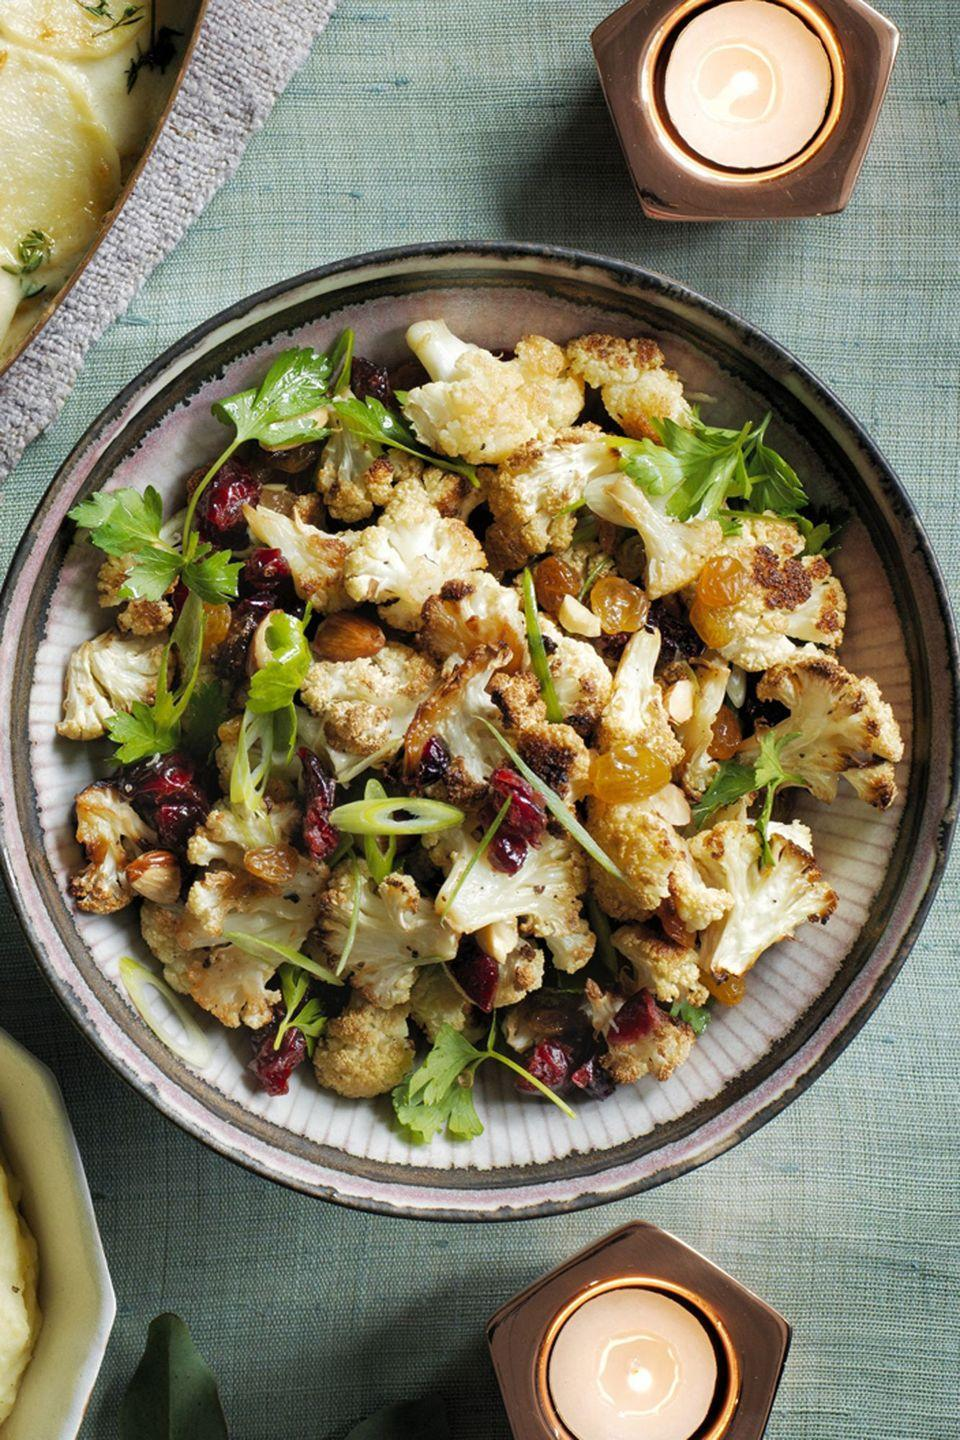 "<p>Instead of sprinkling croutons on top of your salad, lay this roasted cauliflower over a bed of baby arugula for a simple and healthy meal. </p><p><a href=""https://www.womansday.com/food-recipes/food-drinks/recipes/a60491/roasted-cauliflower-salad-recipe/"" rel=""nofollow noopener"" target=""_blank"" data-ylk=""slk:Get the recipe for Roasted Cauliflower Salad."" class=""link rapid-noclick-resp""><em>Get the recipe for Roasted Cauliflower Salad.</em></a></p>"